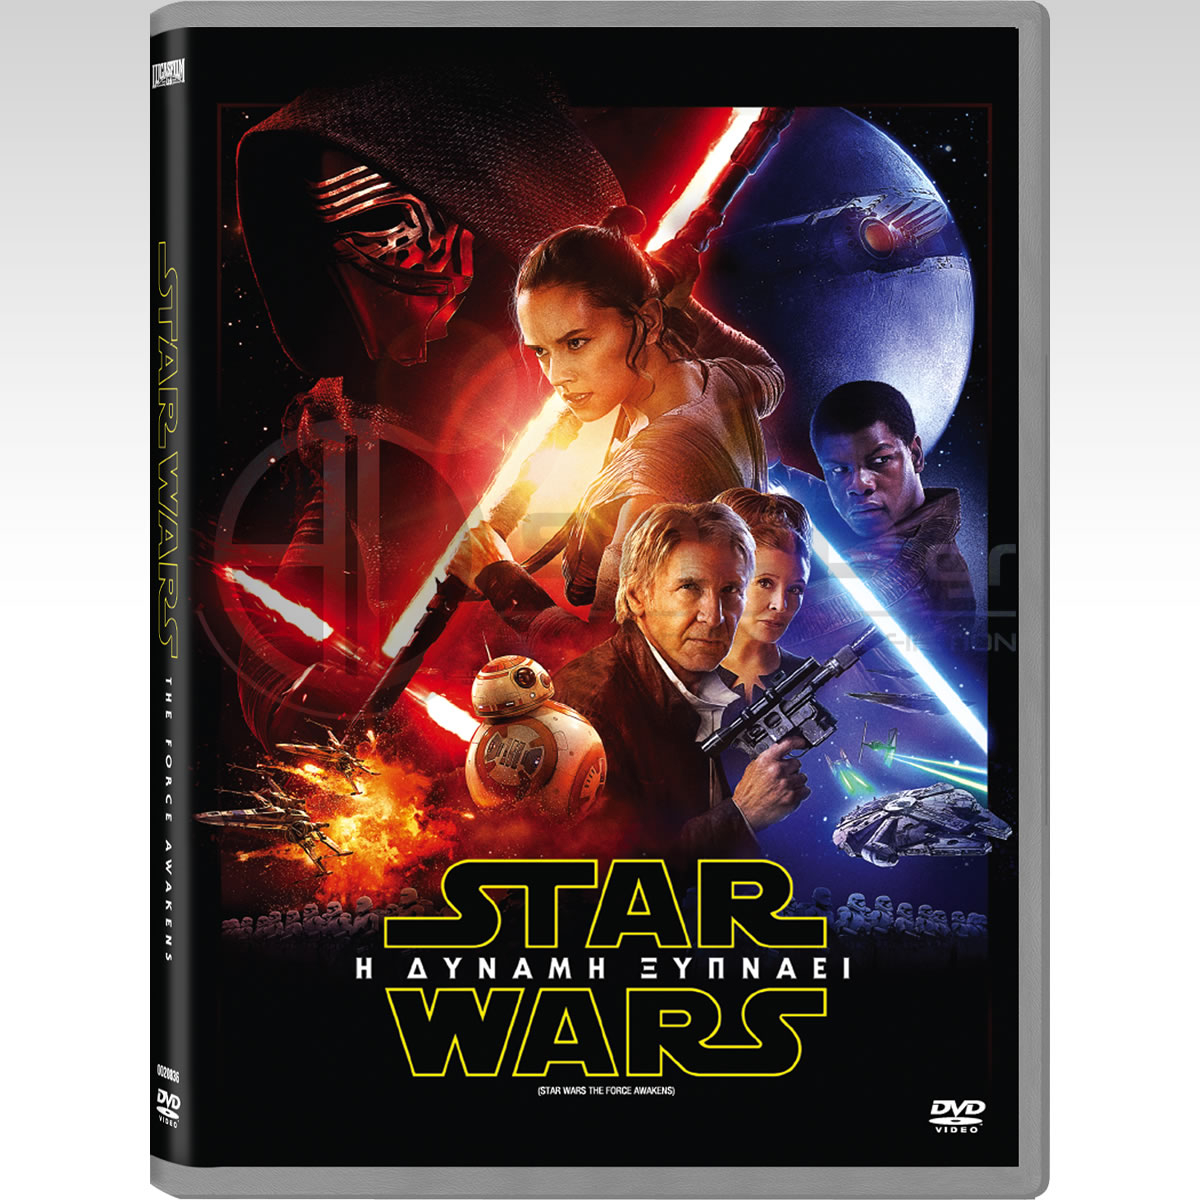 STAR WARS VII: THE FORCE AWAKENS - STAR WARS VII: Η ΔΥΝΑΜΗ ΞΥΠΝΑΕΙ [ΕΛΛΗΝΙΚΟ] (DVD)